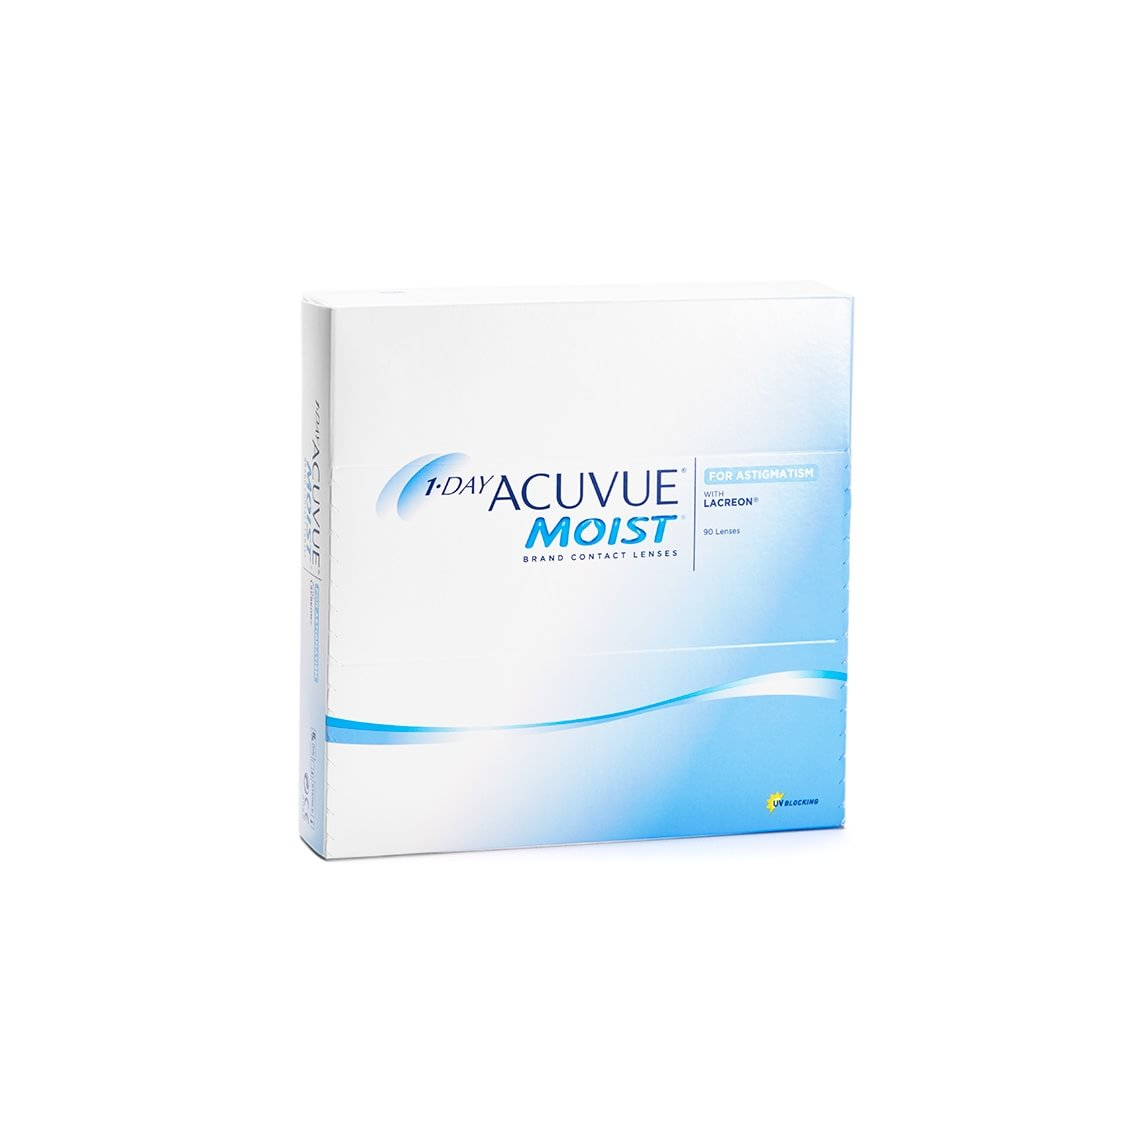 1-Day Acuvue Moist for Astigmatism 90 st/box